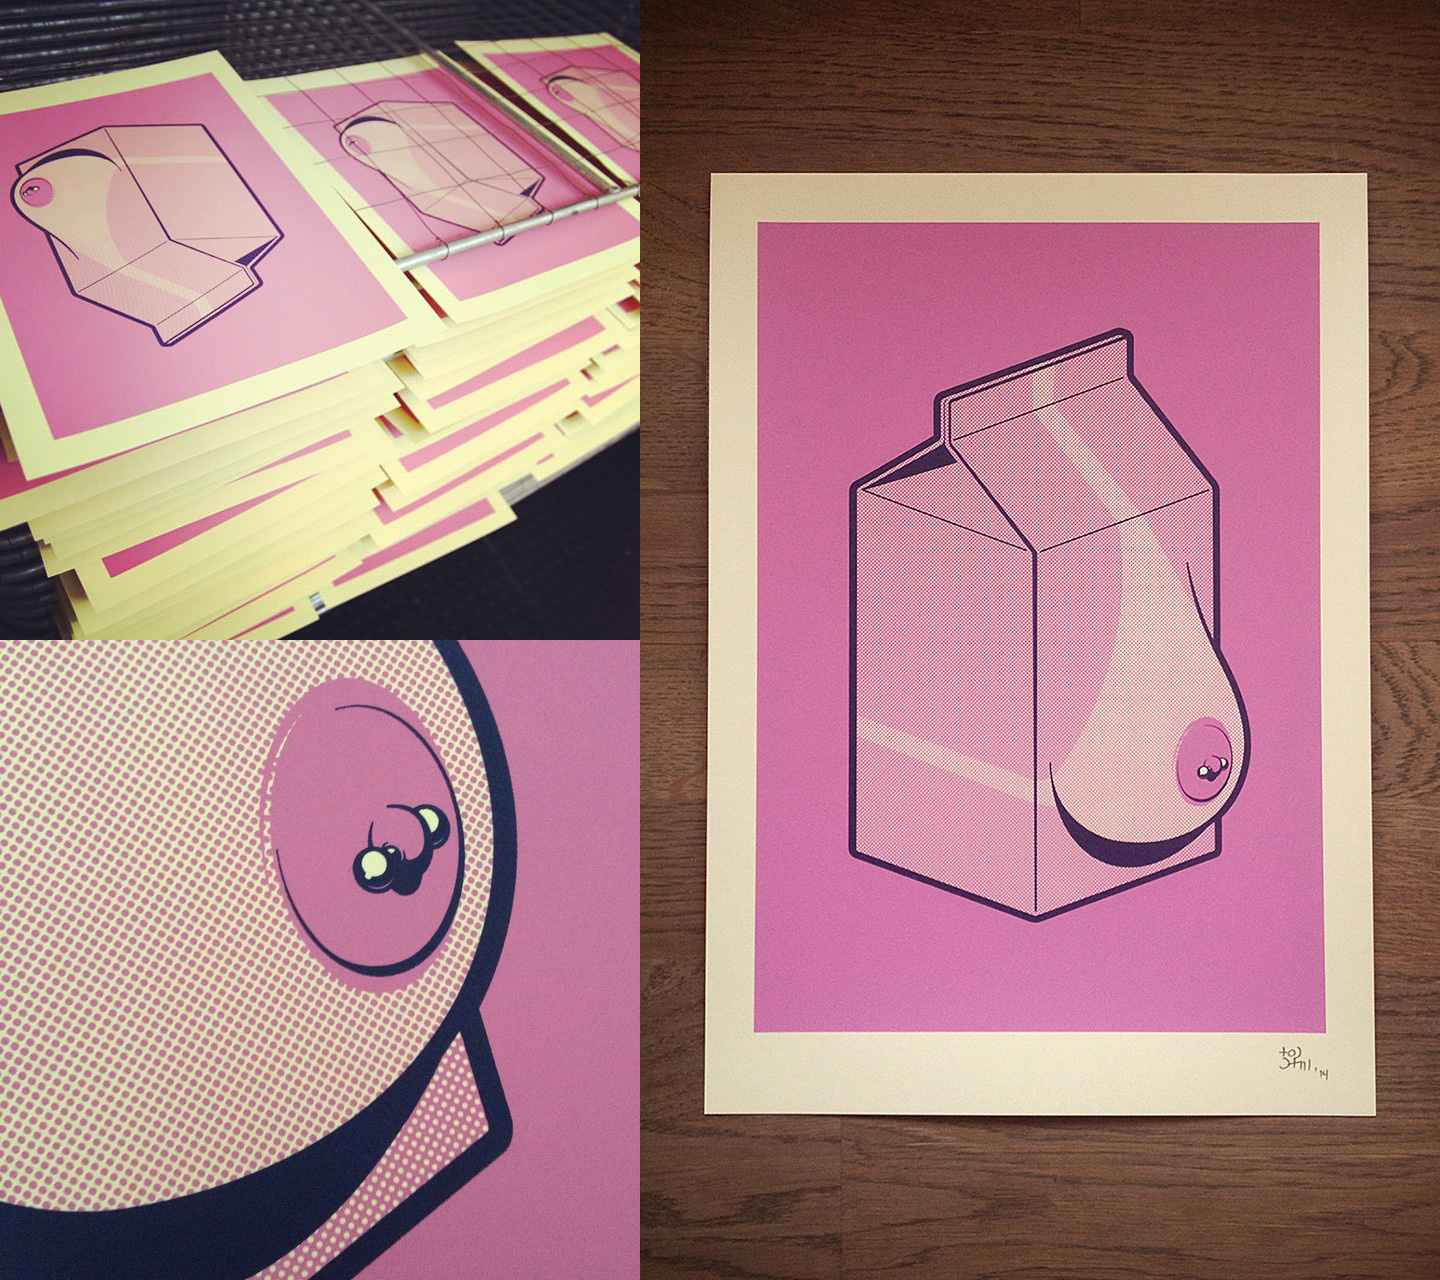 art_illustration_andre_levy_zhion_mama_breast_milk_carton_silk_screen_limited_print.jpg